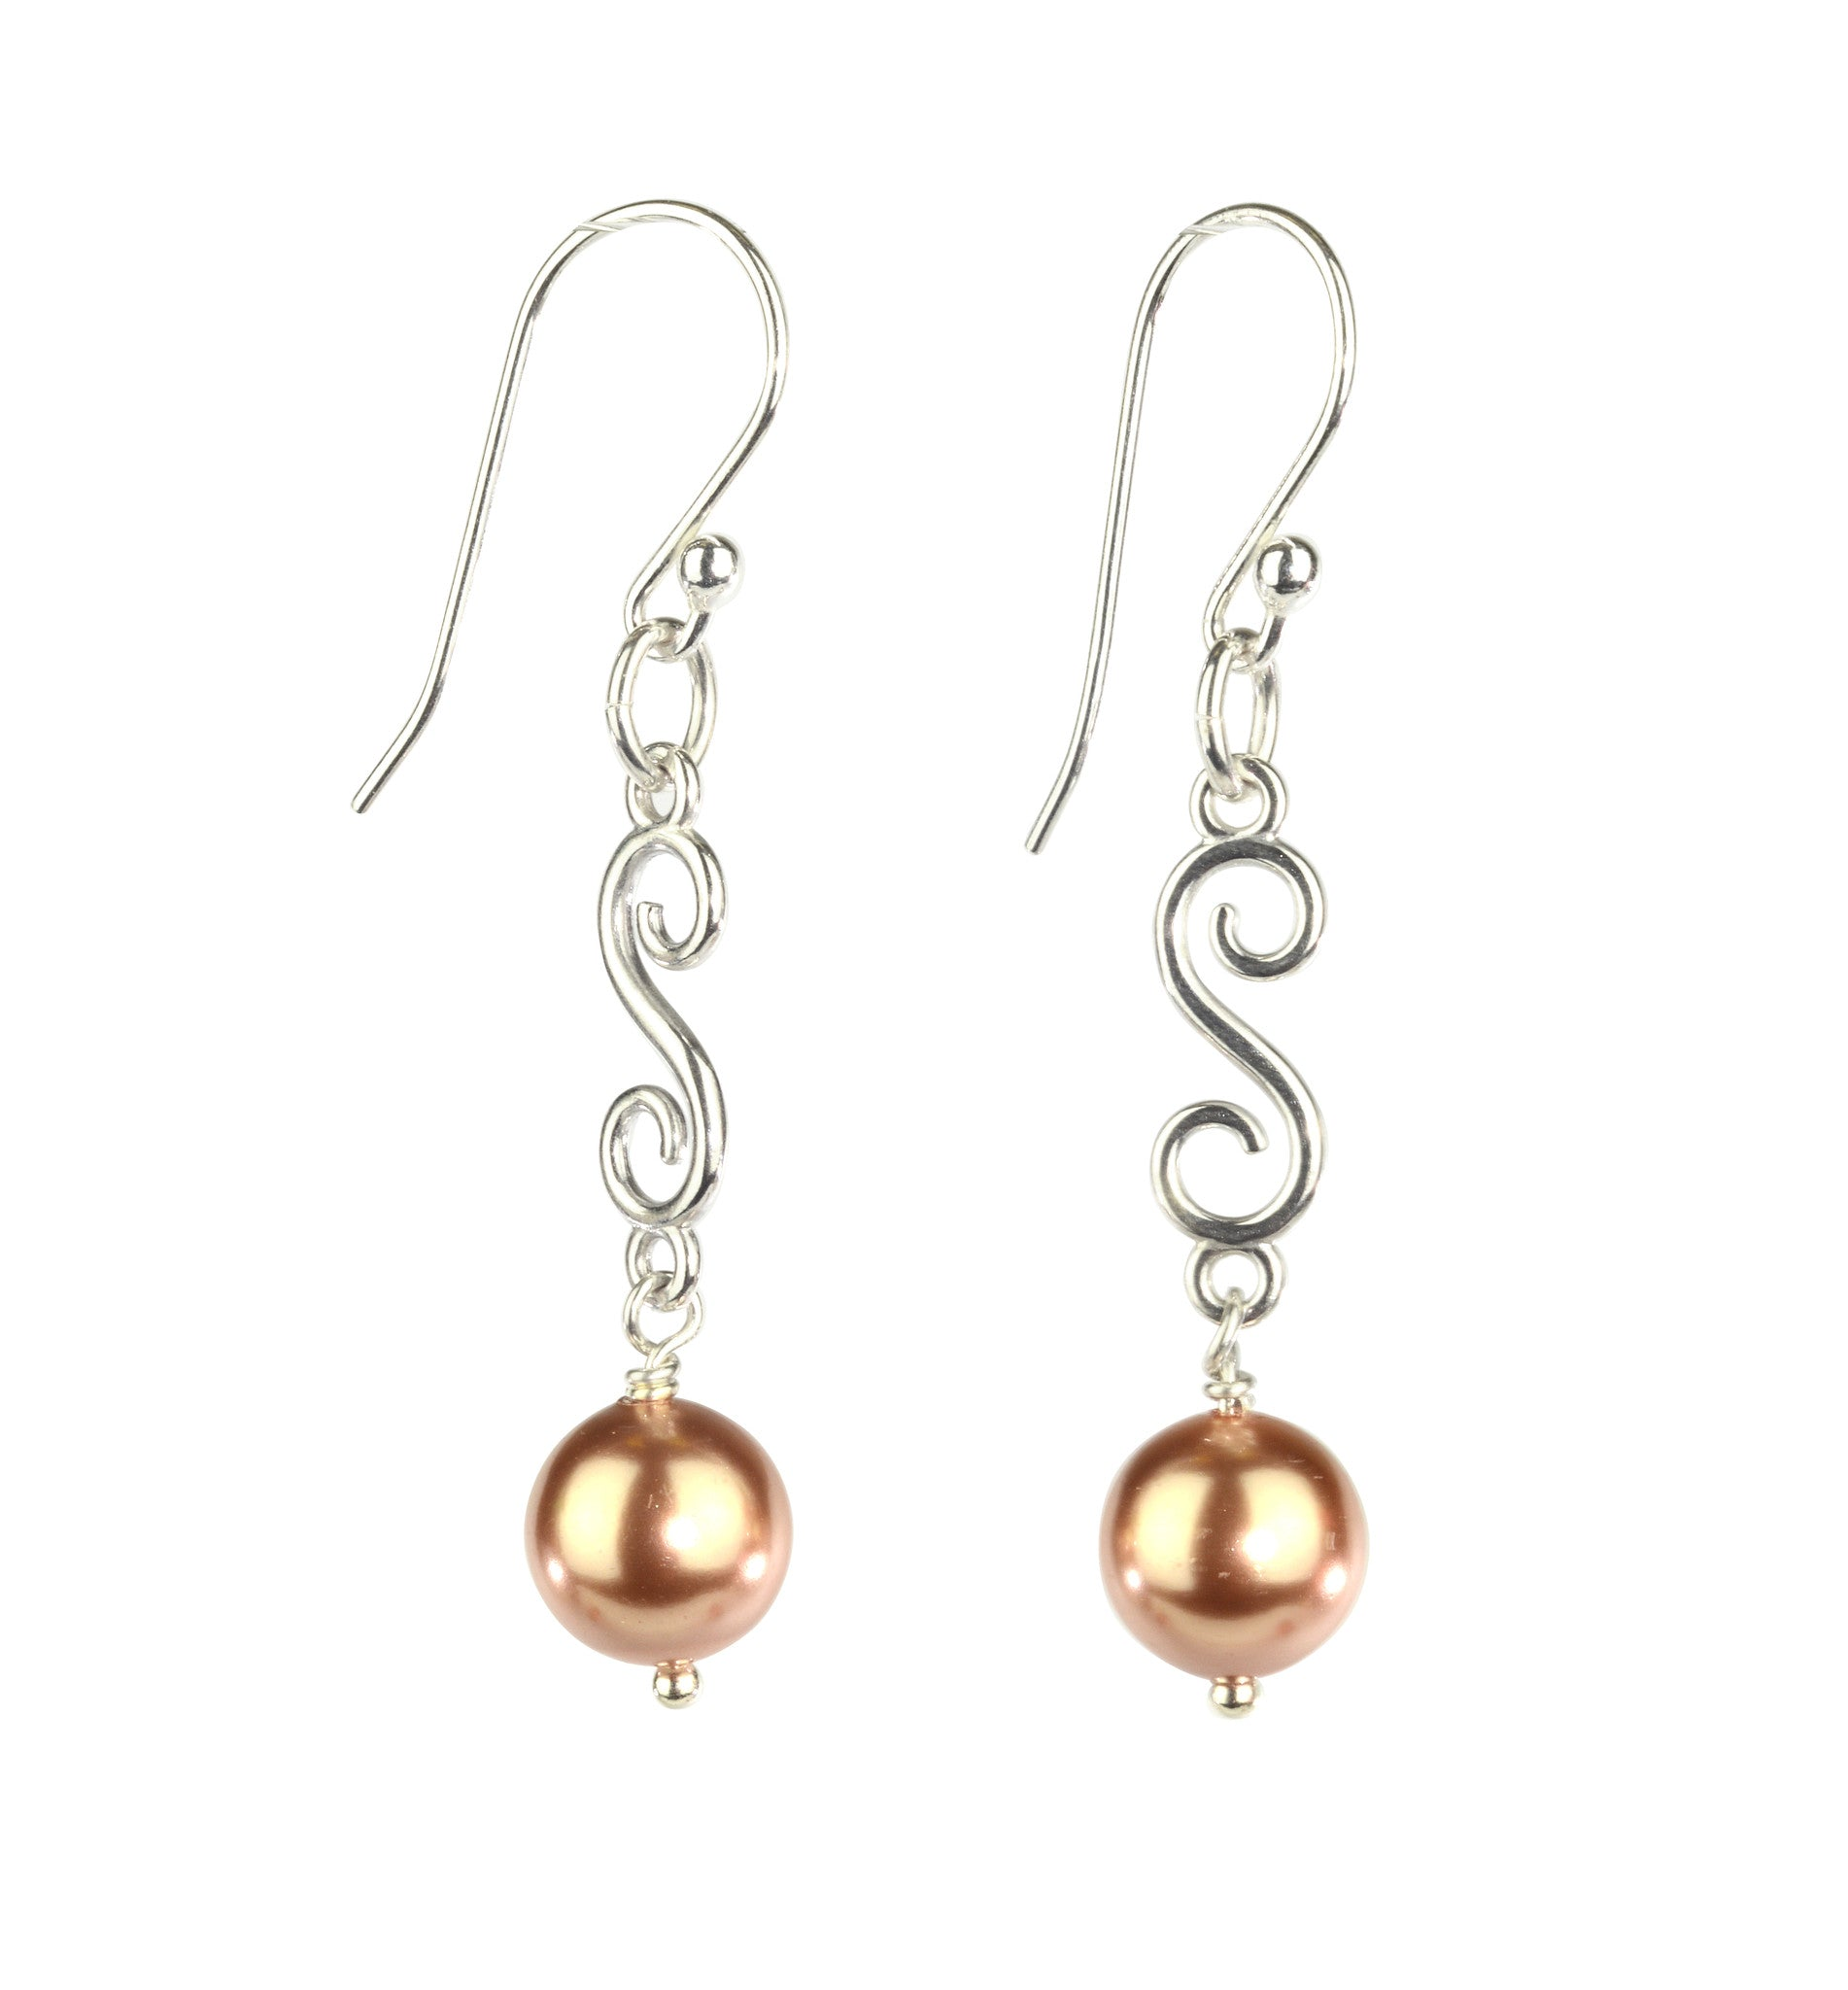 Fancy spiral earrings with drop in sterling silver